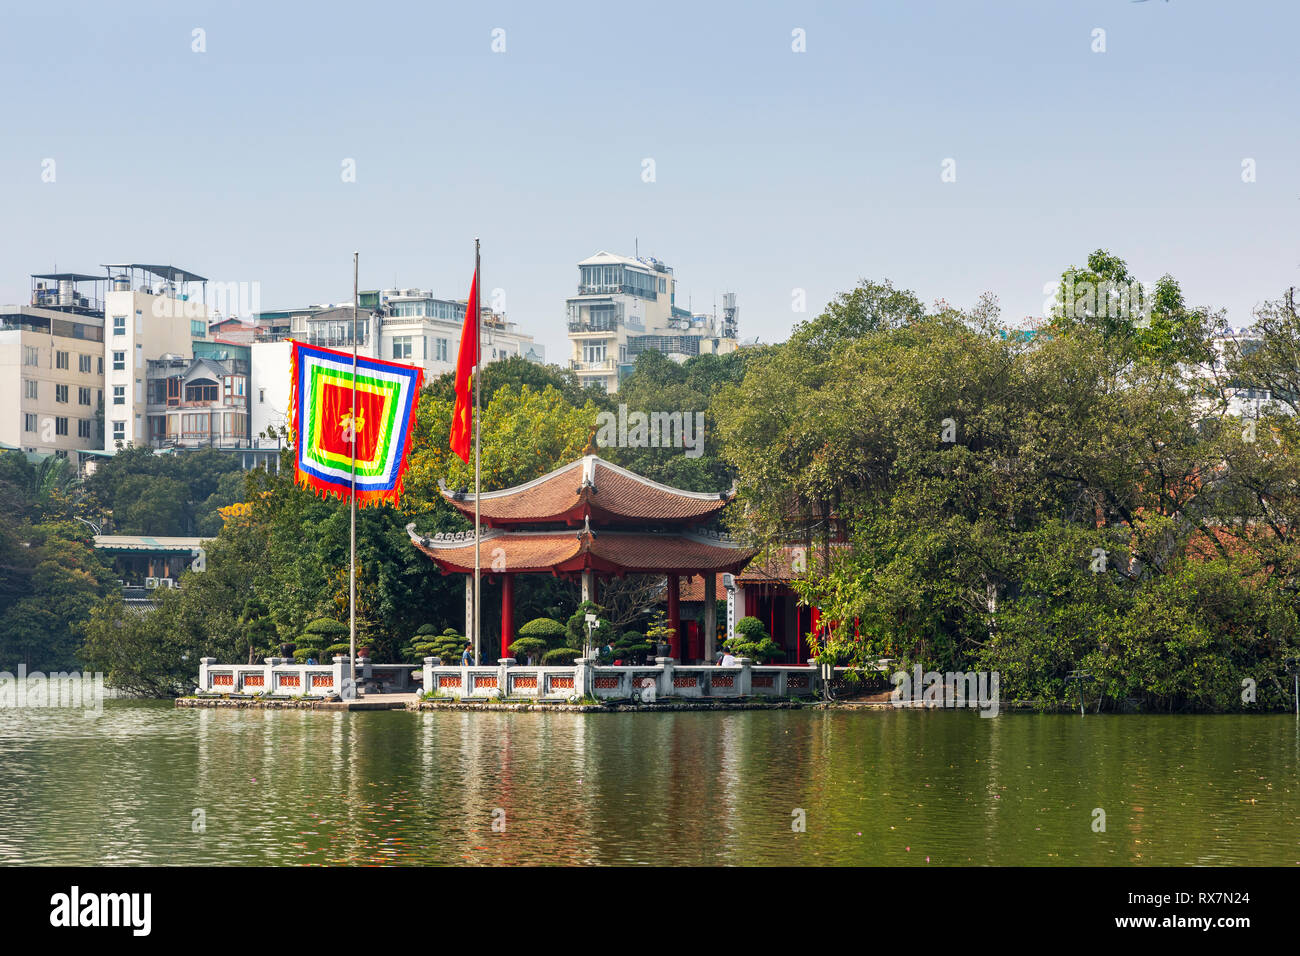 Ho Hoan Kiem lake from the Old Quarter to the Temple of the Jade Mountain (Den Ngoc Son). Old Quarter, Hanoi, Vietnam - Stock Image